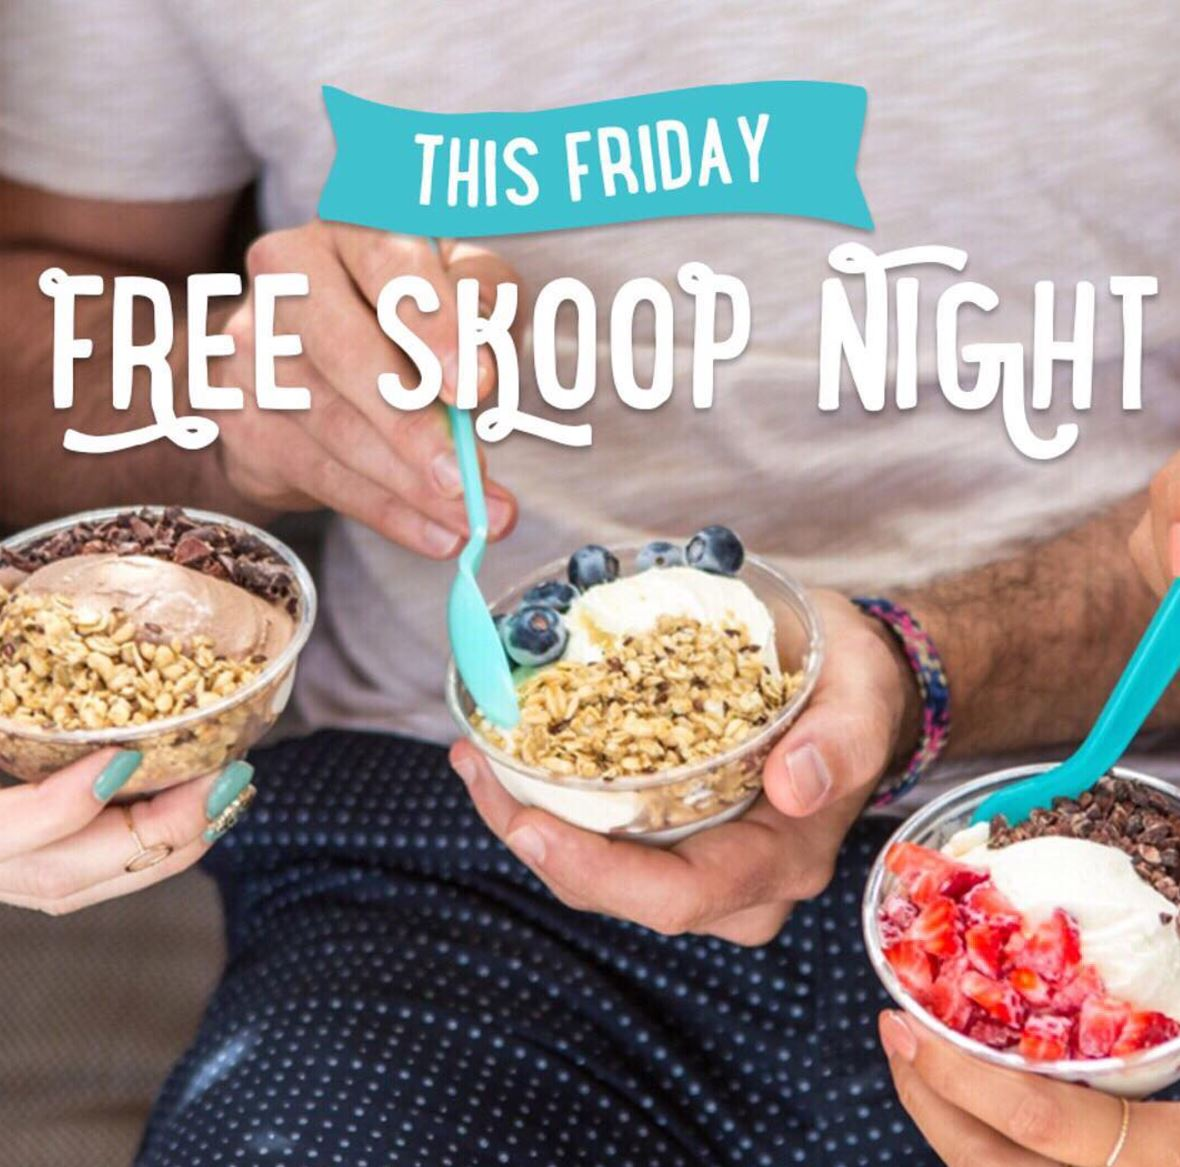 June 9 | Nekter Gives Out Free Skoops Of Ice Cream!